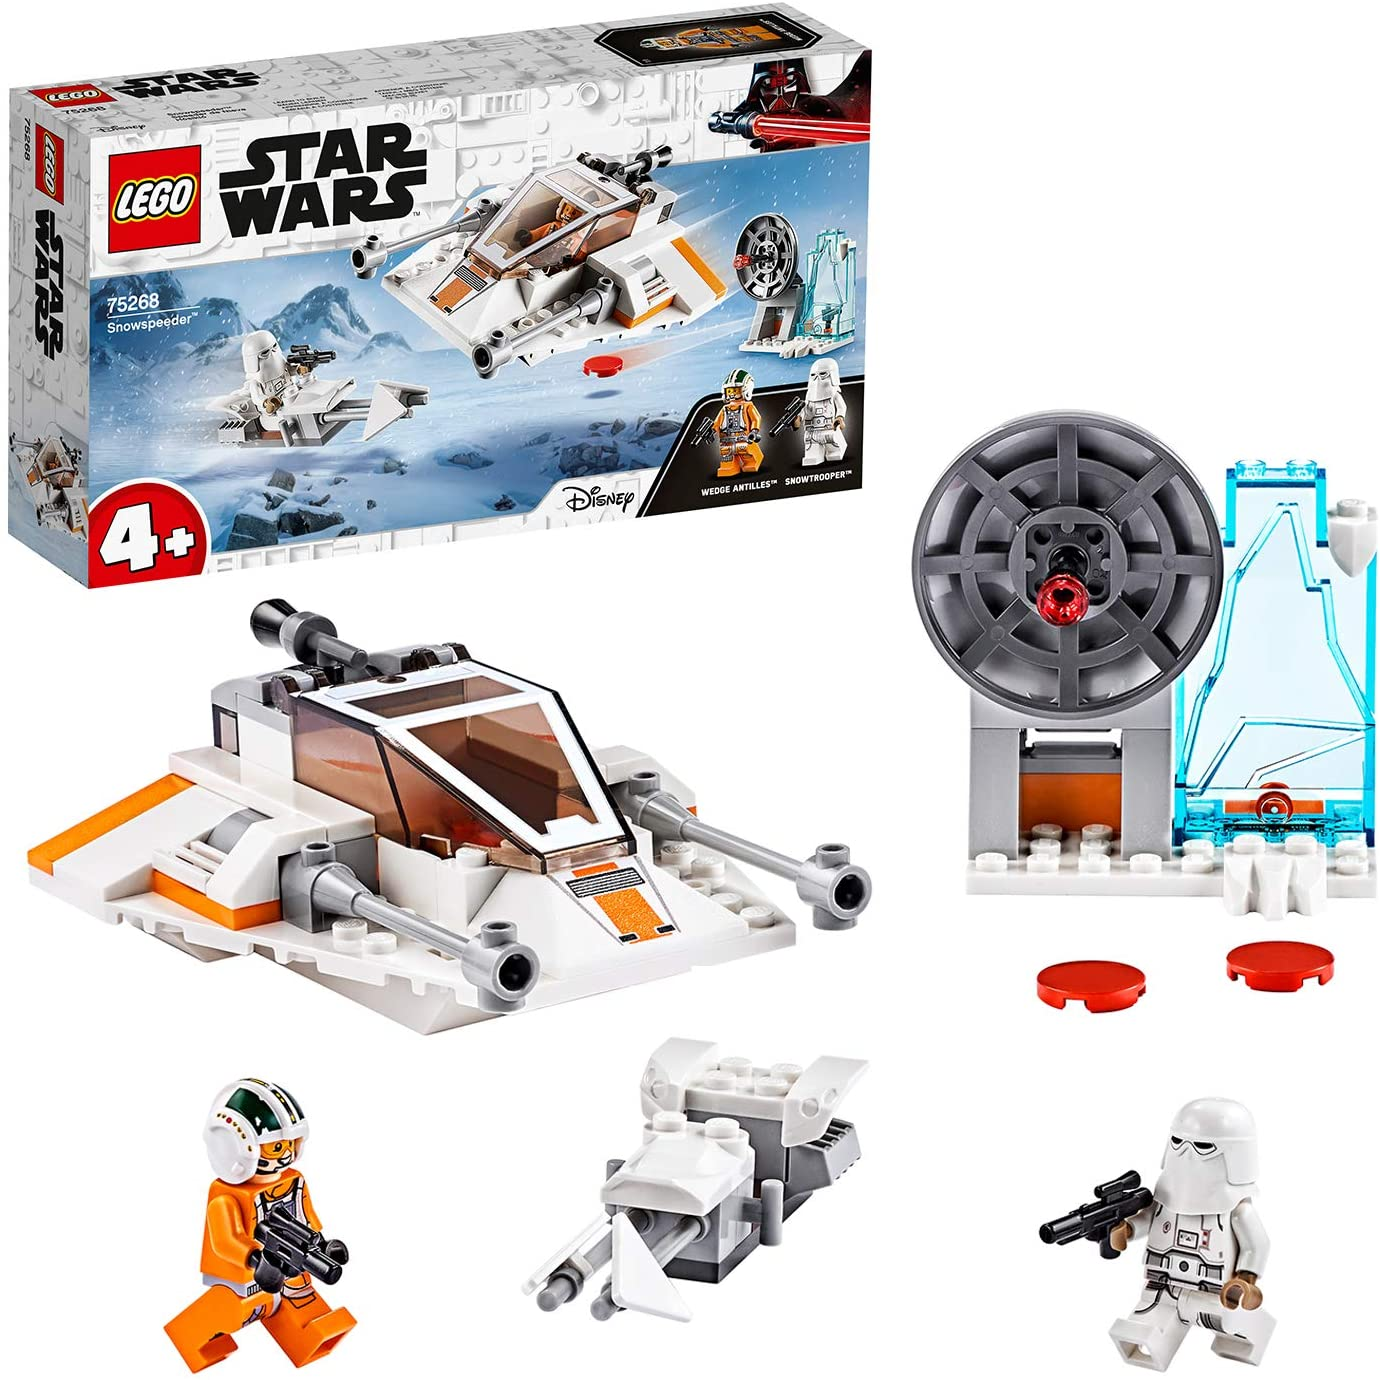 Star Wars, Snowspeeder et speeder bike de LEGO